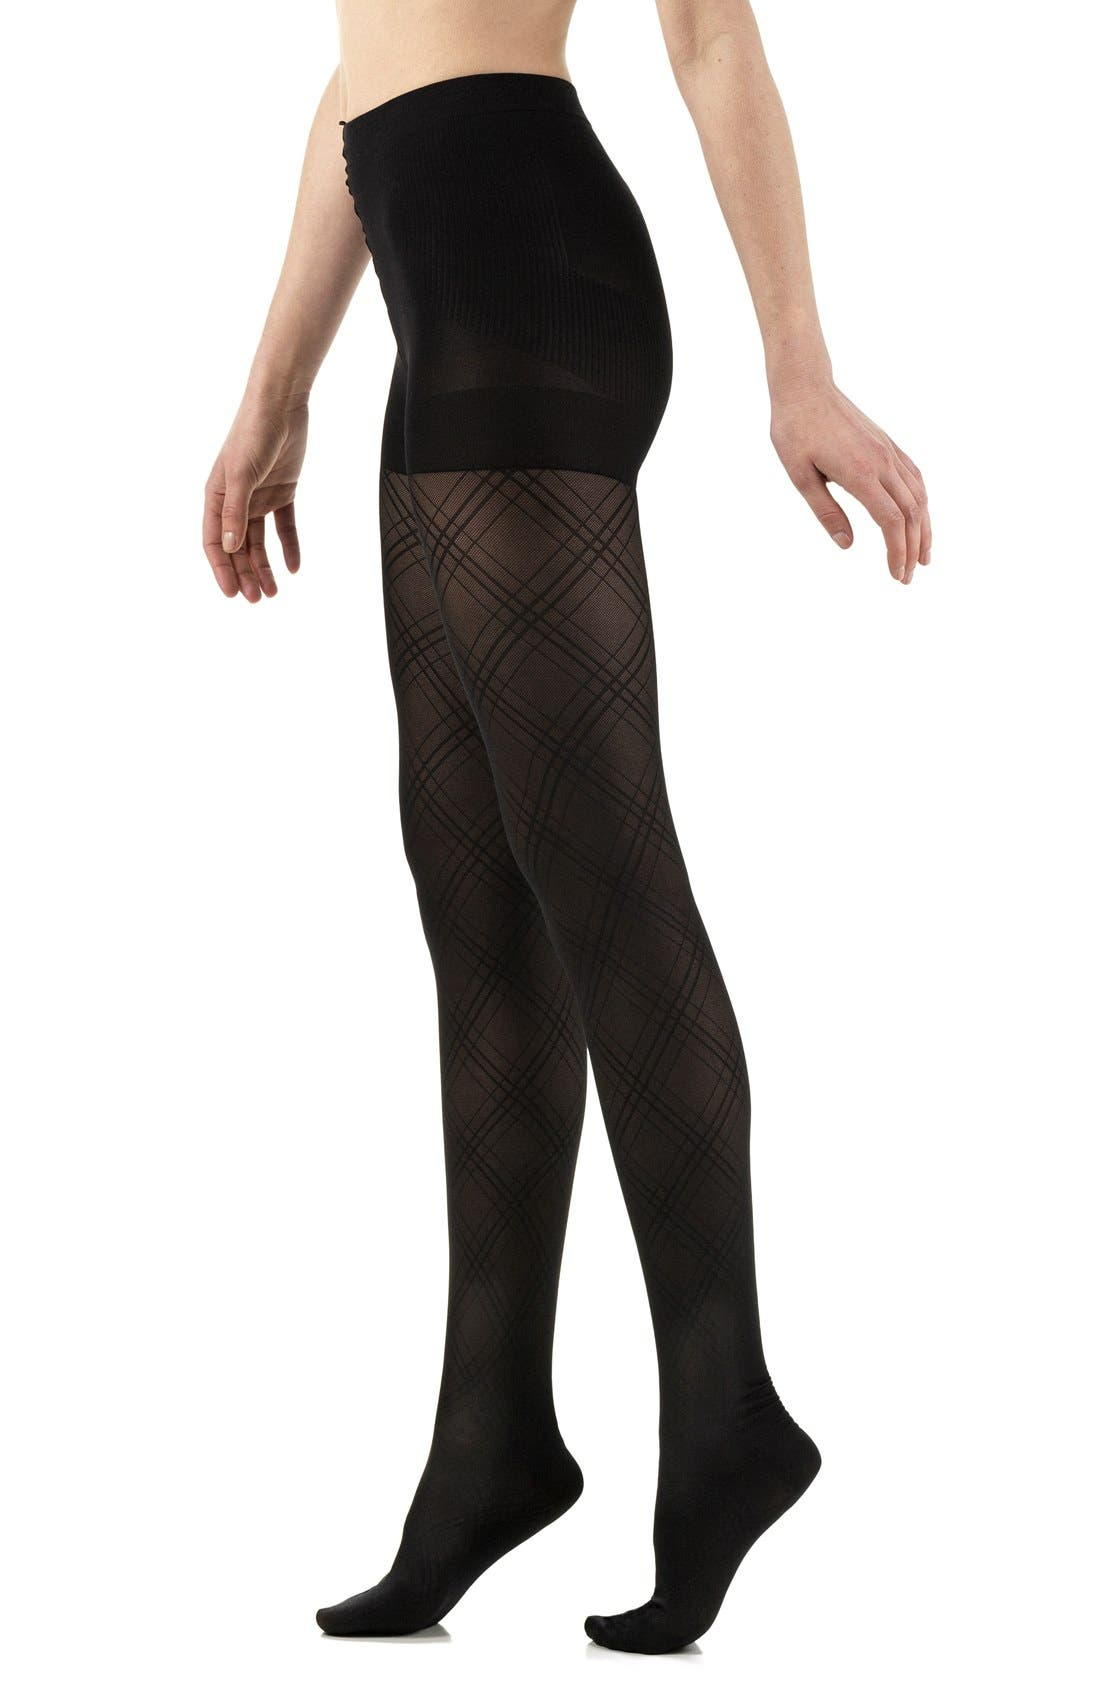 Opaque Argyle Compression Tights,                             Main thumbnail 1, color,                             001